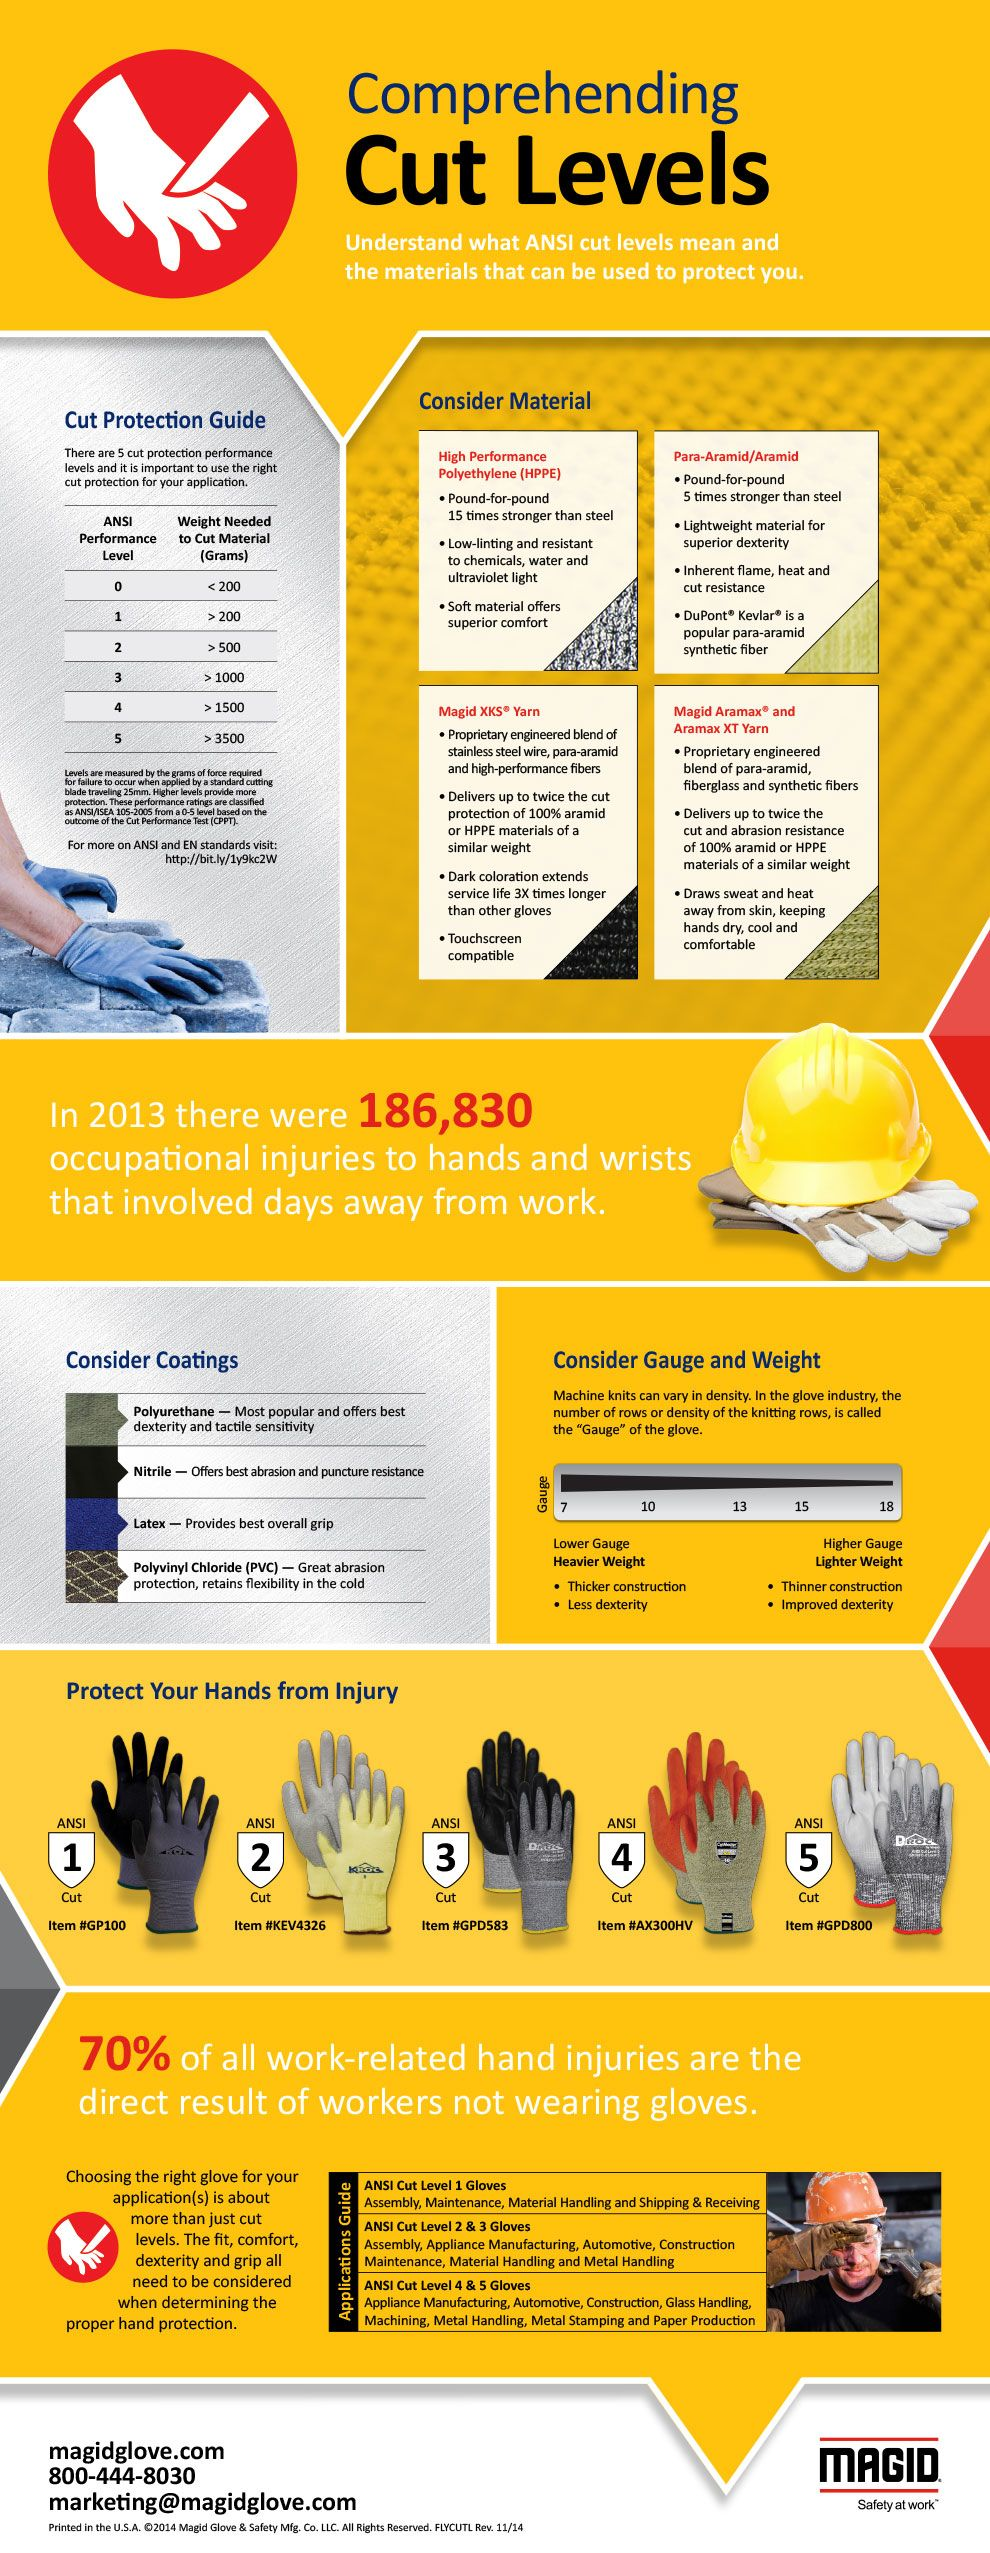 Pin by Kris on HSEMS Occupational safety, Workplace